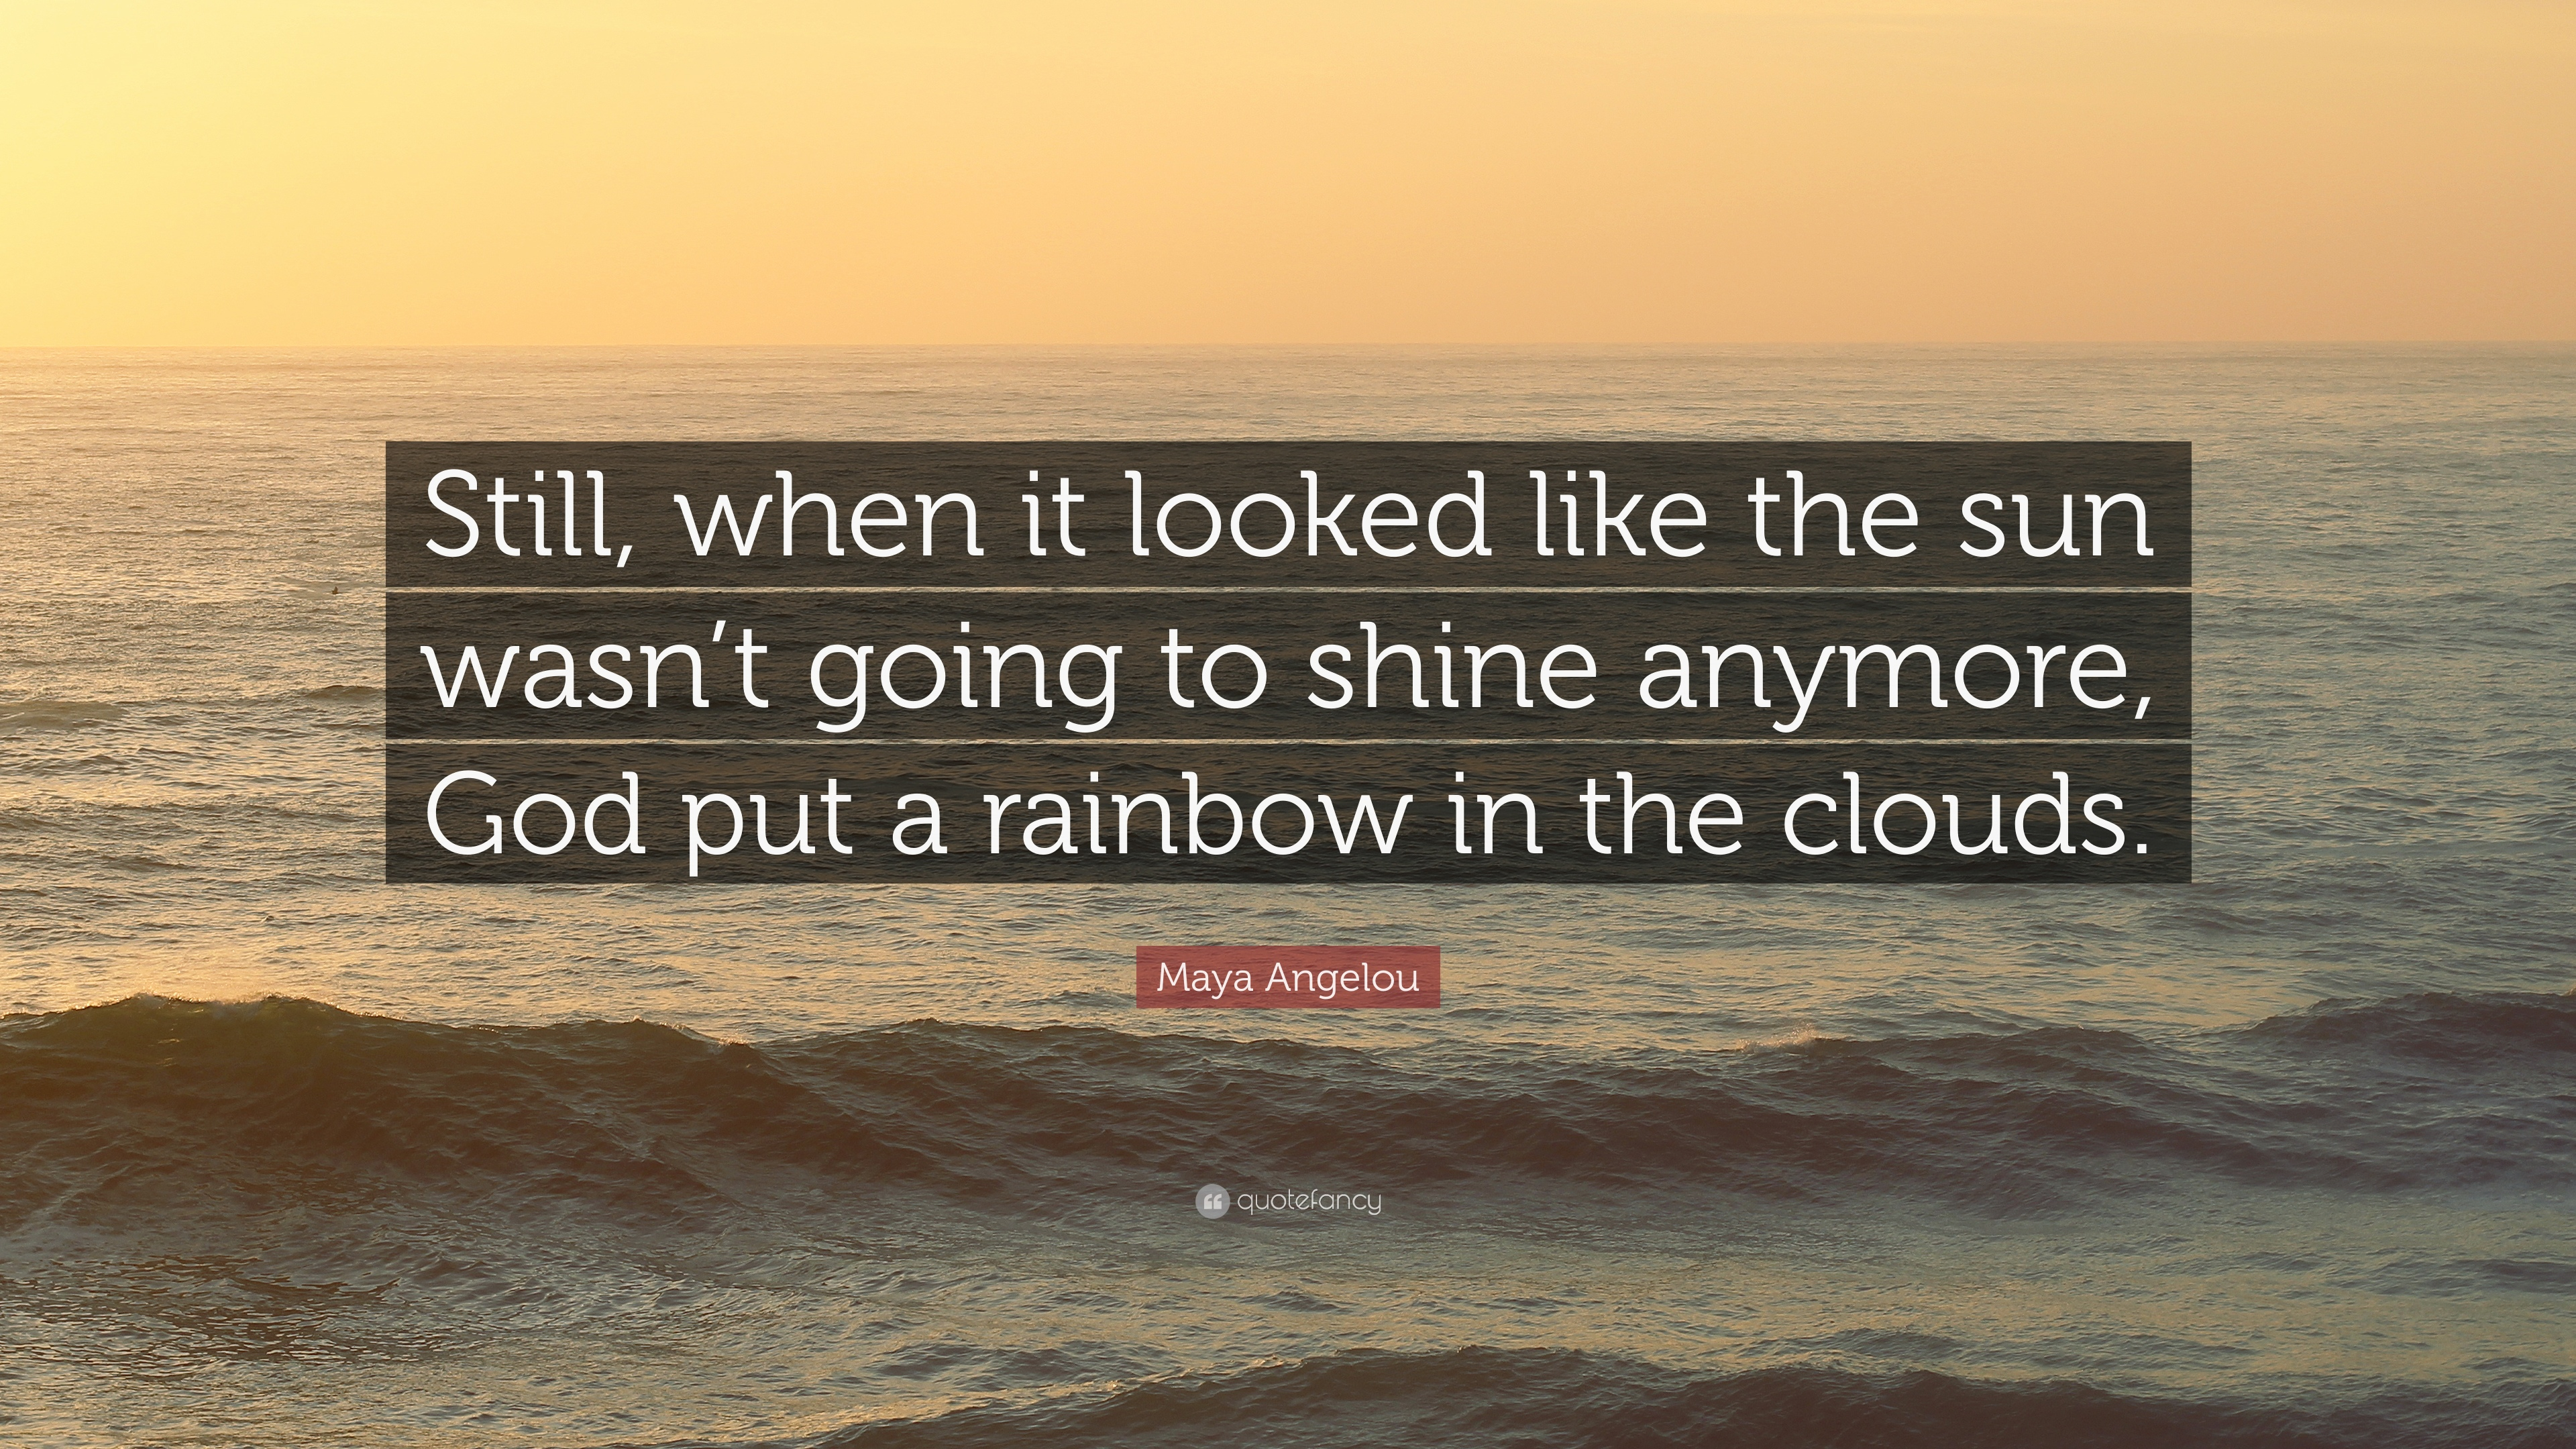 Maya Angelou Quote Still When It Looked Like The Sun Wasnt Going